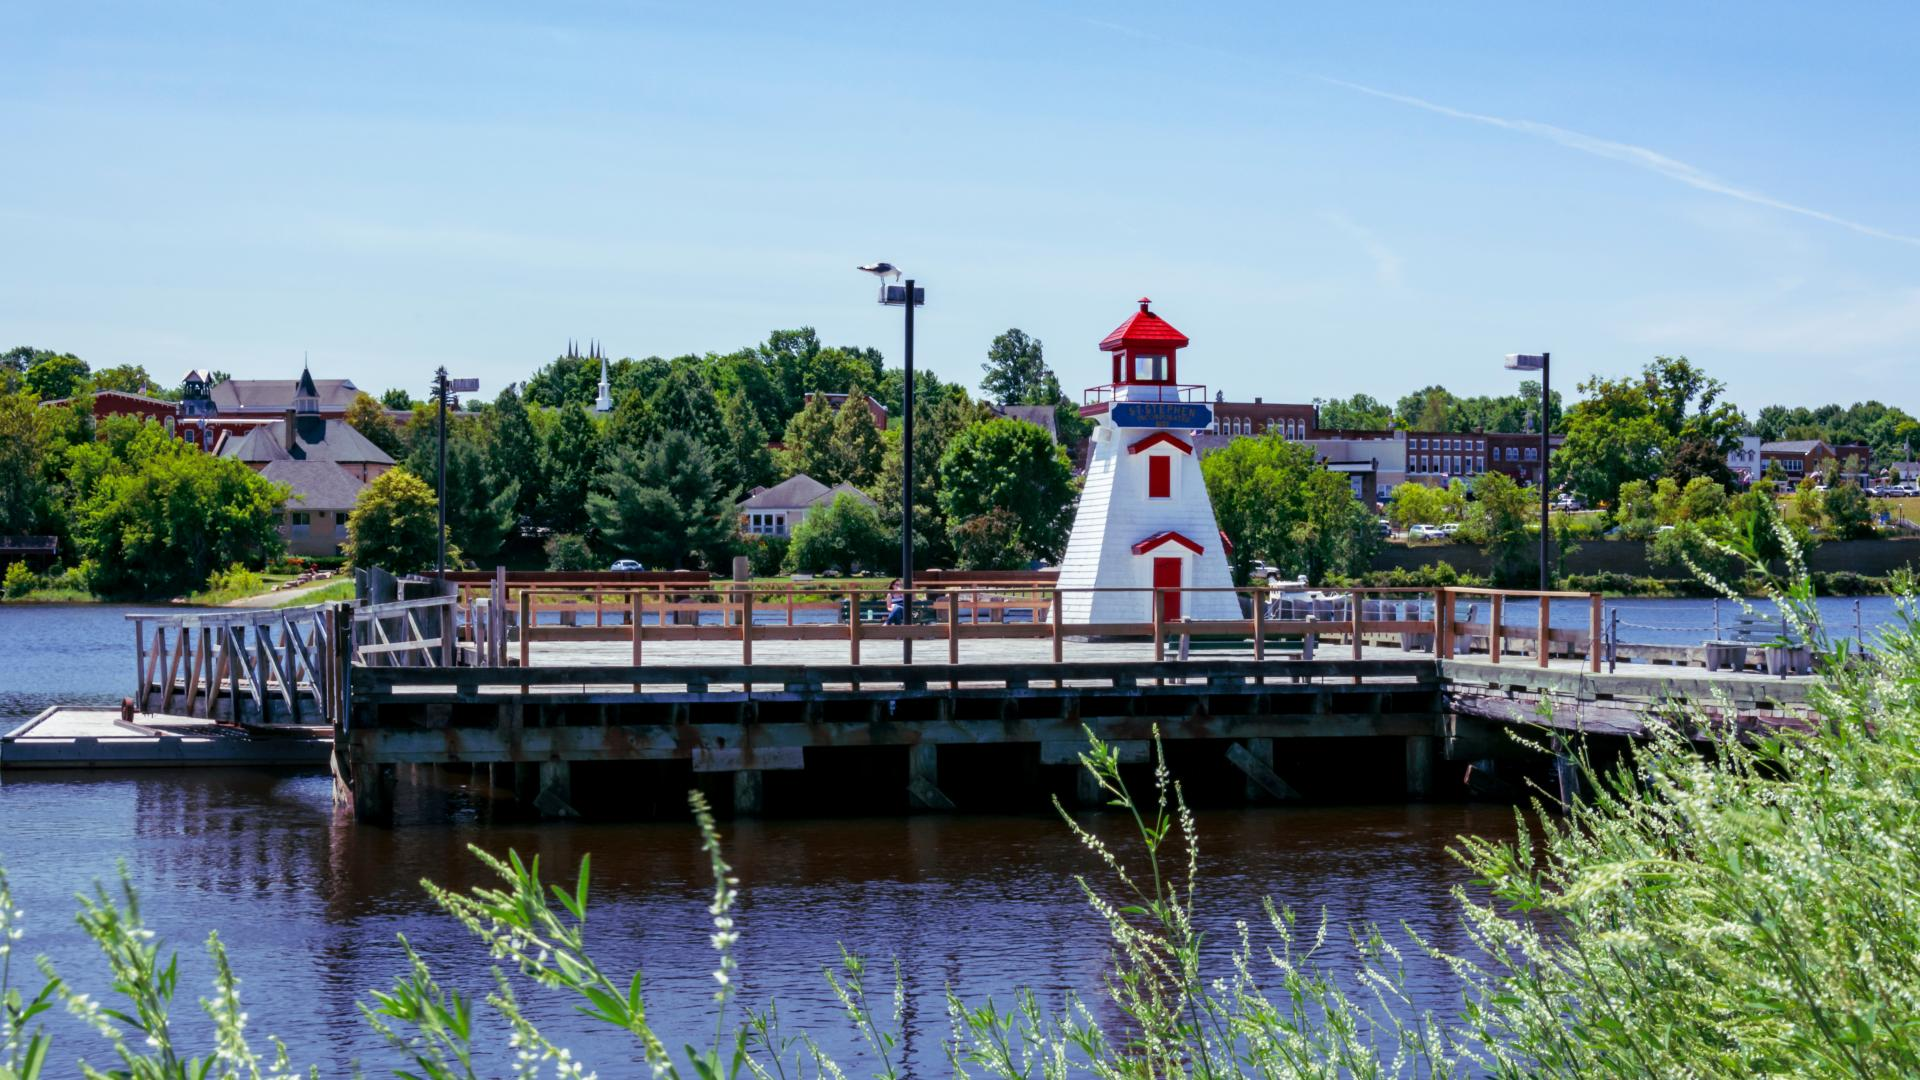 St. Stephen, New Brunswick, Canada. Saint Stephen's Lighthouse resides on the public wharf and above the waters of the St Croix river. The American town of Calais, Maine can be seen.